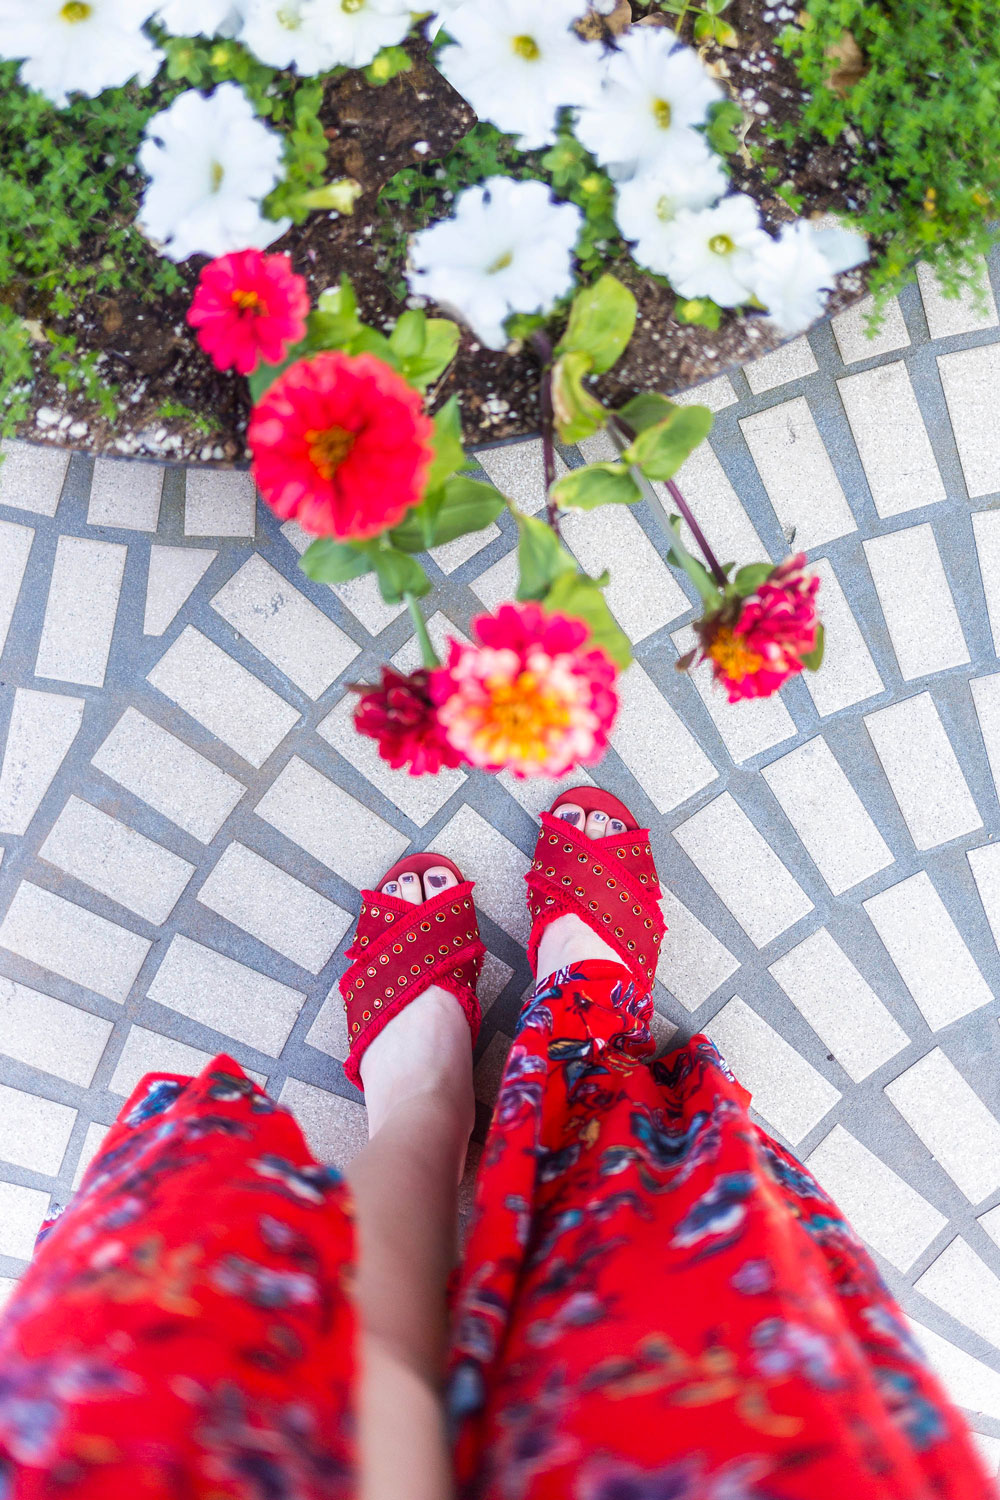 Stitch Fix Reviews // Schutz Walquiria Studded Slide Sandal in Red